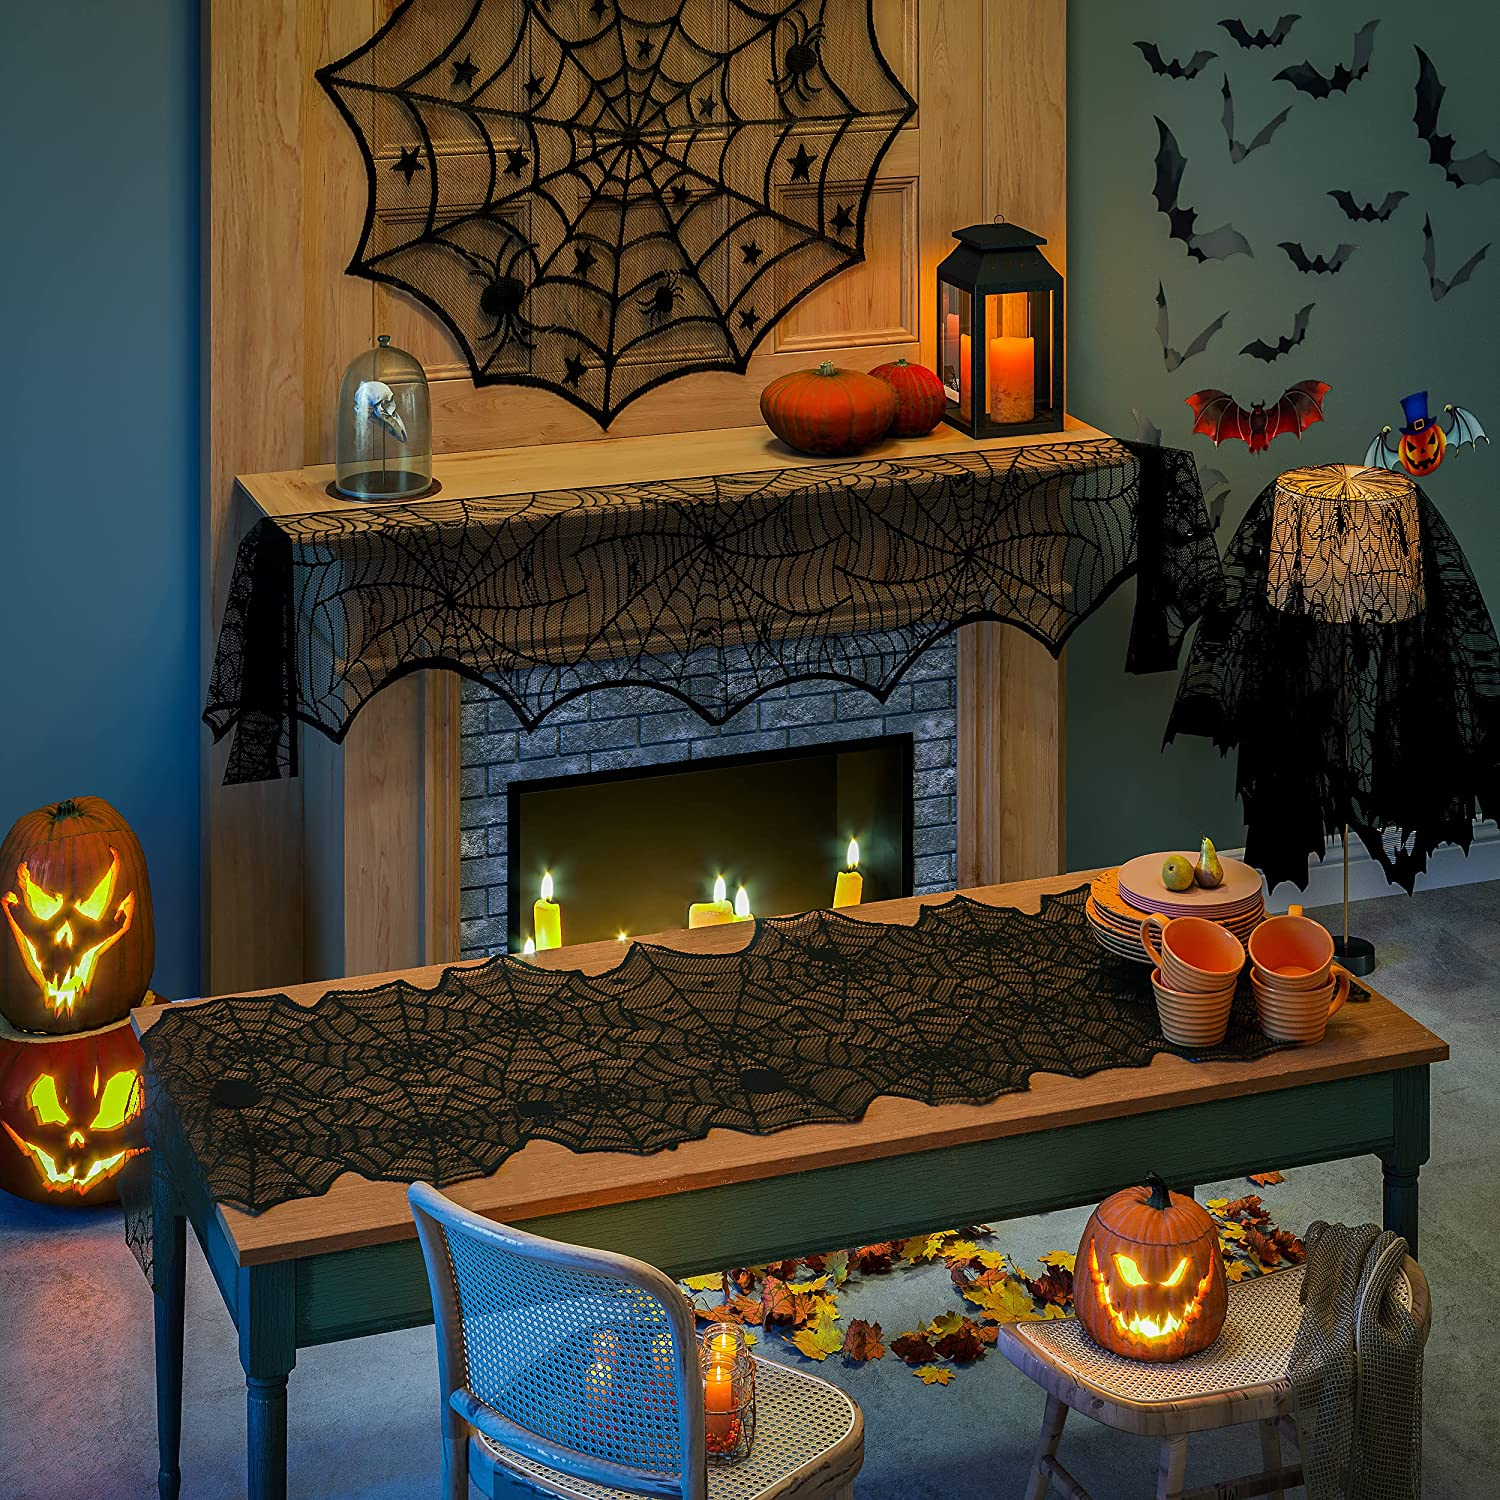 Blivalley 5 Pack Halloween Decorations Sets Indoor Halloween Spider Fireplace Mantel Scarf & Round Table Cover & Lace Table Runner & Cobweb Lampshade Halloween Decor with 60 pcs Scary 3D Bat